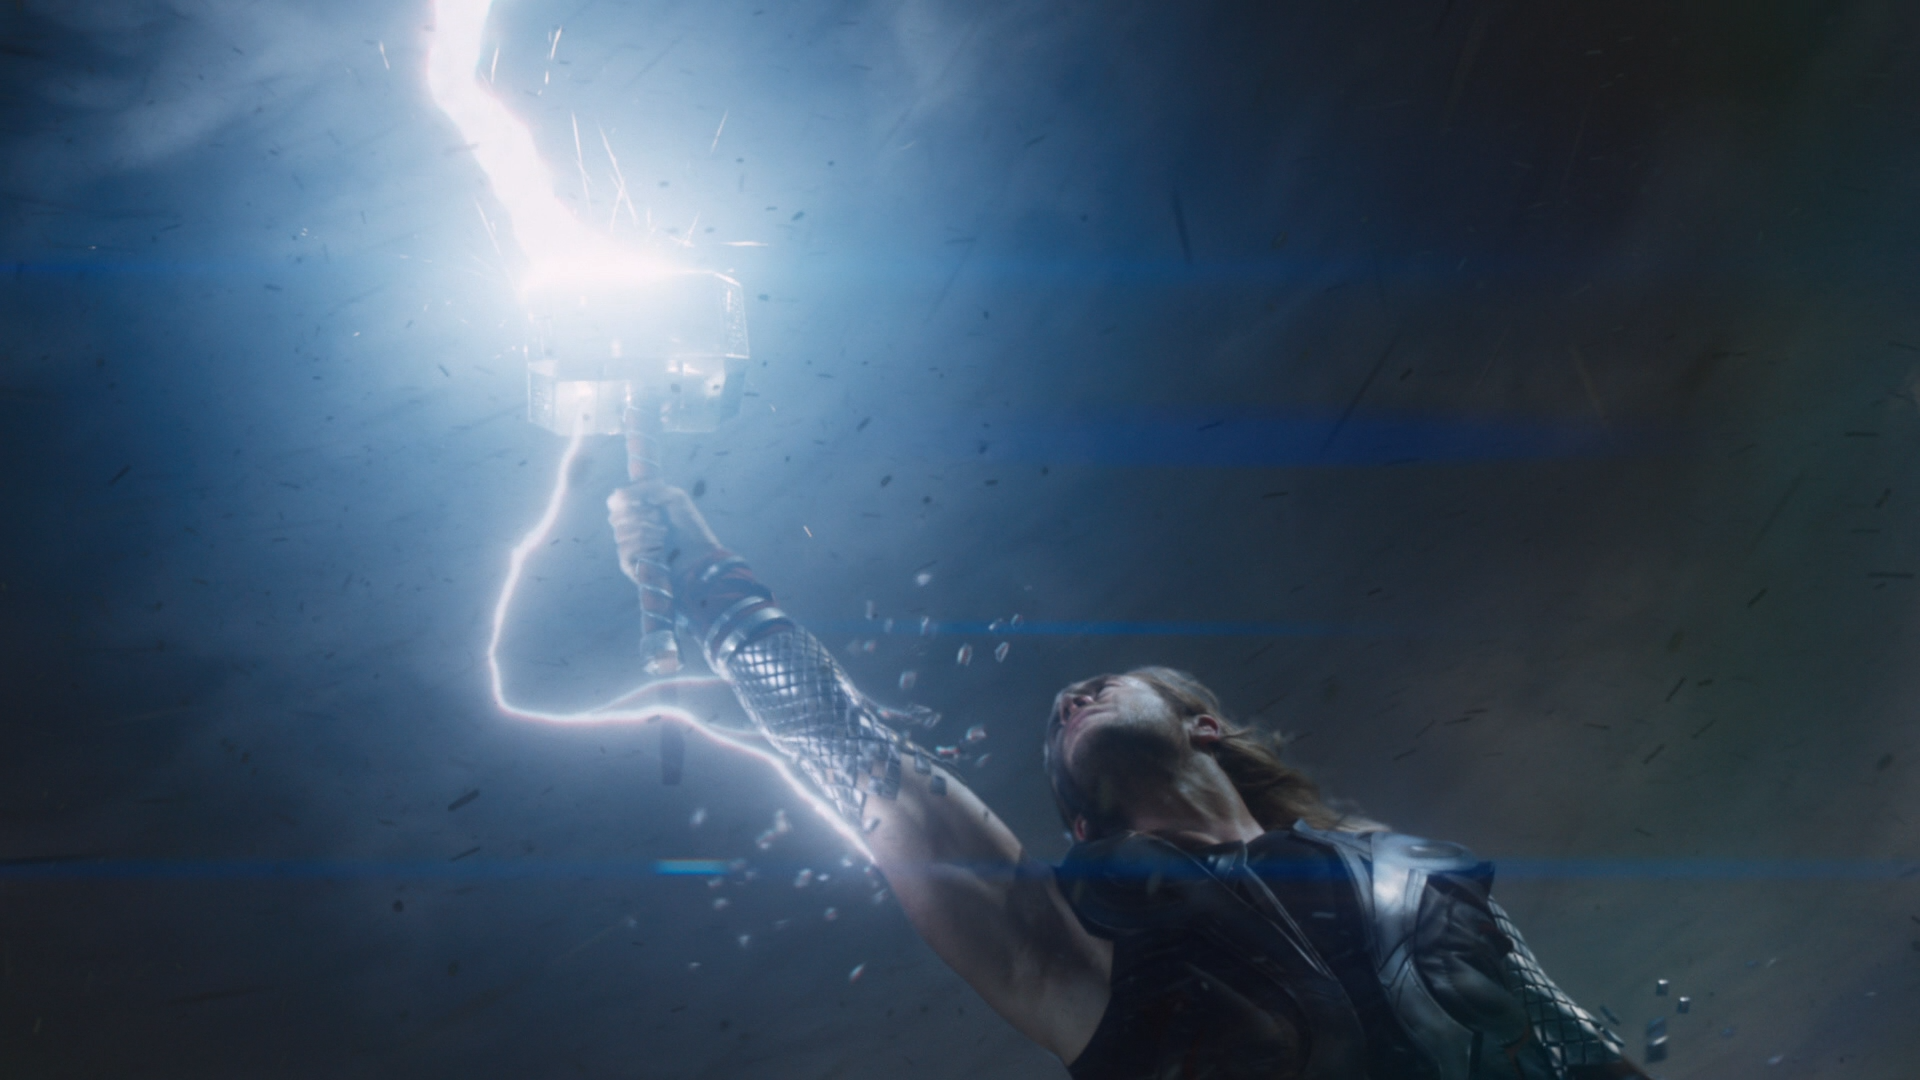 Thor Lightning Scene posted by Michelle Thompson